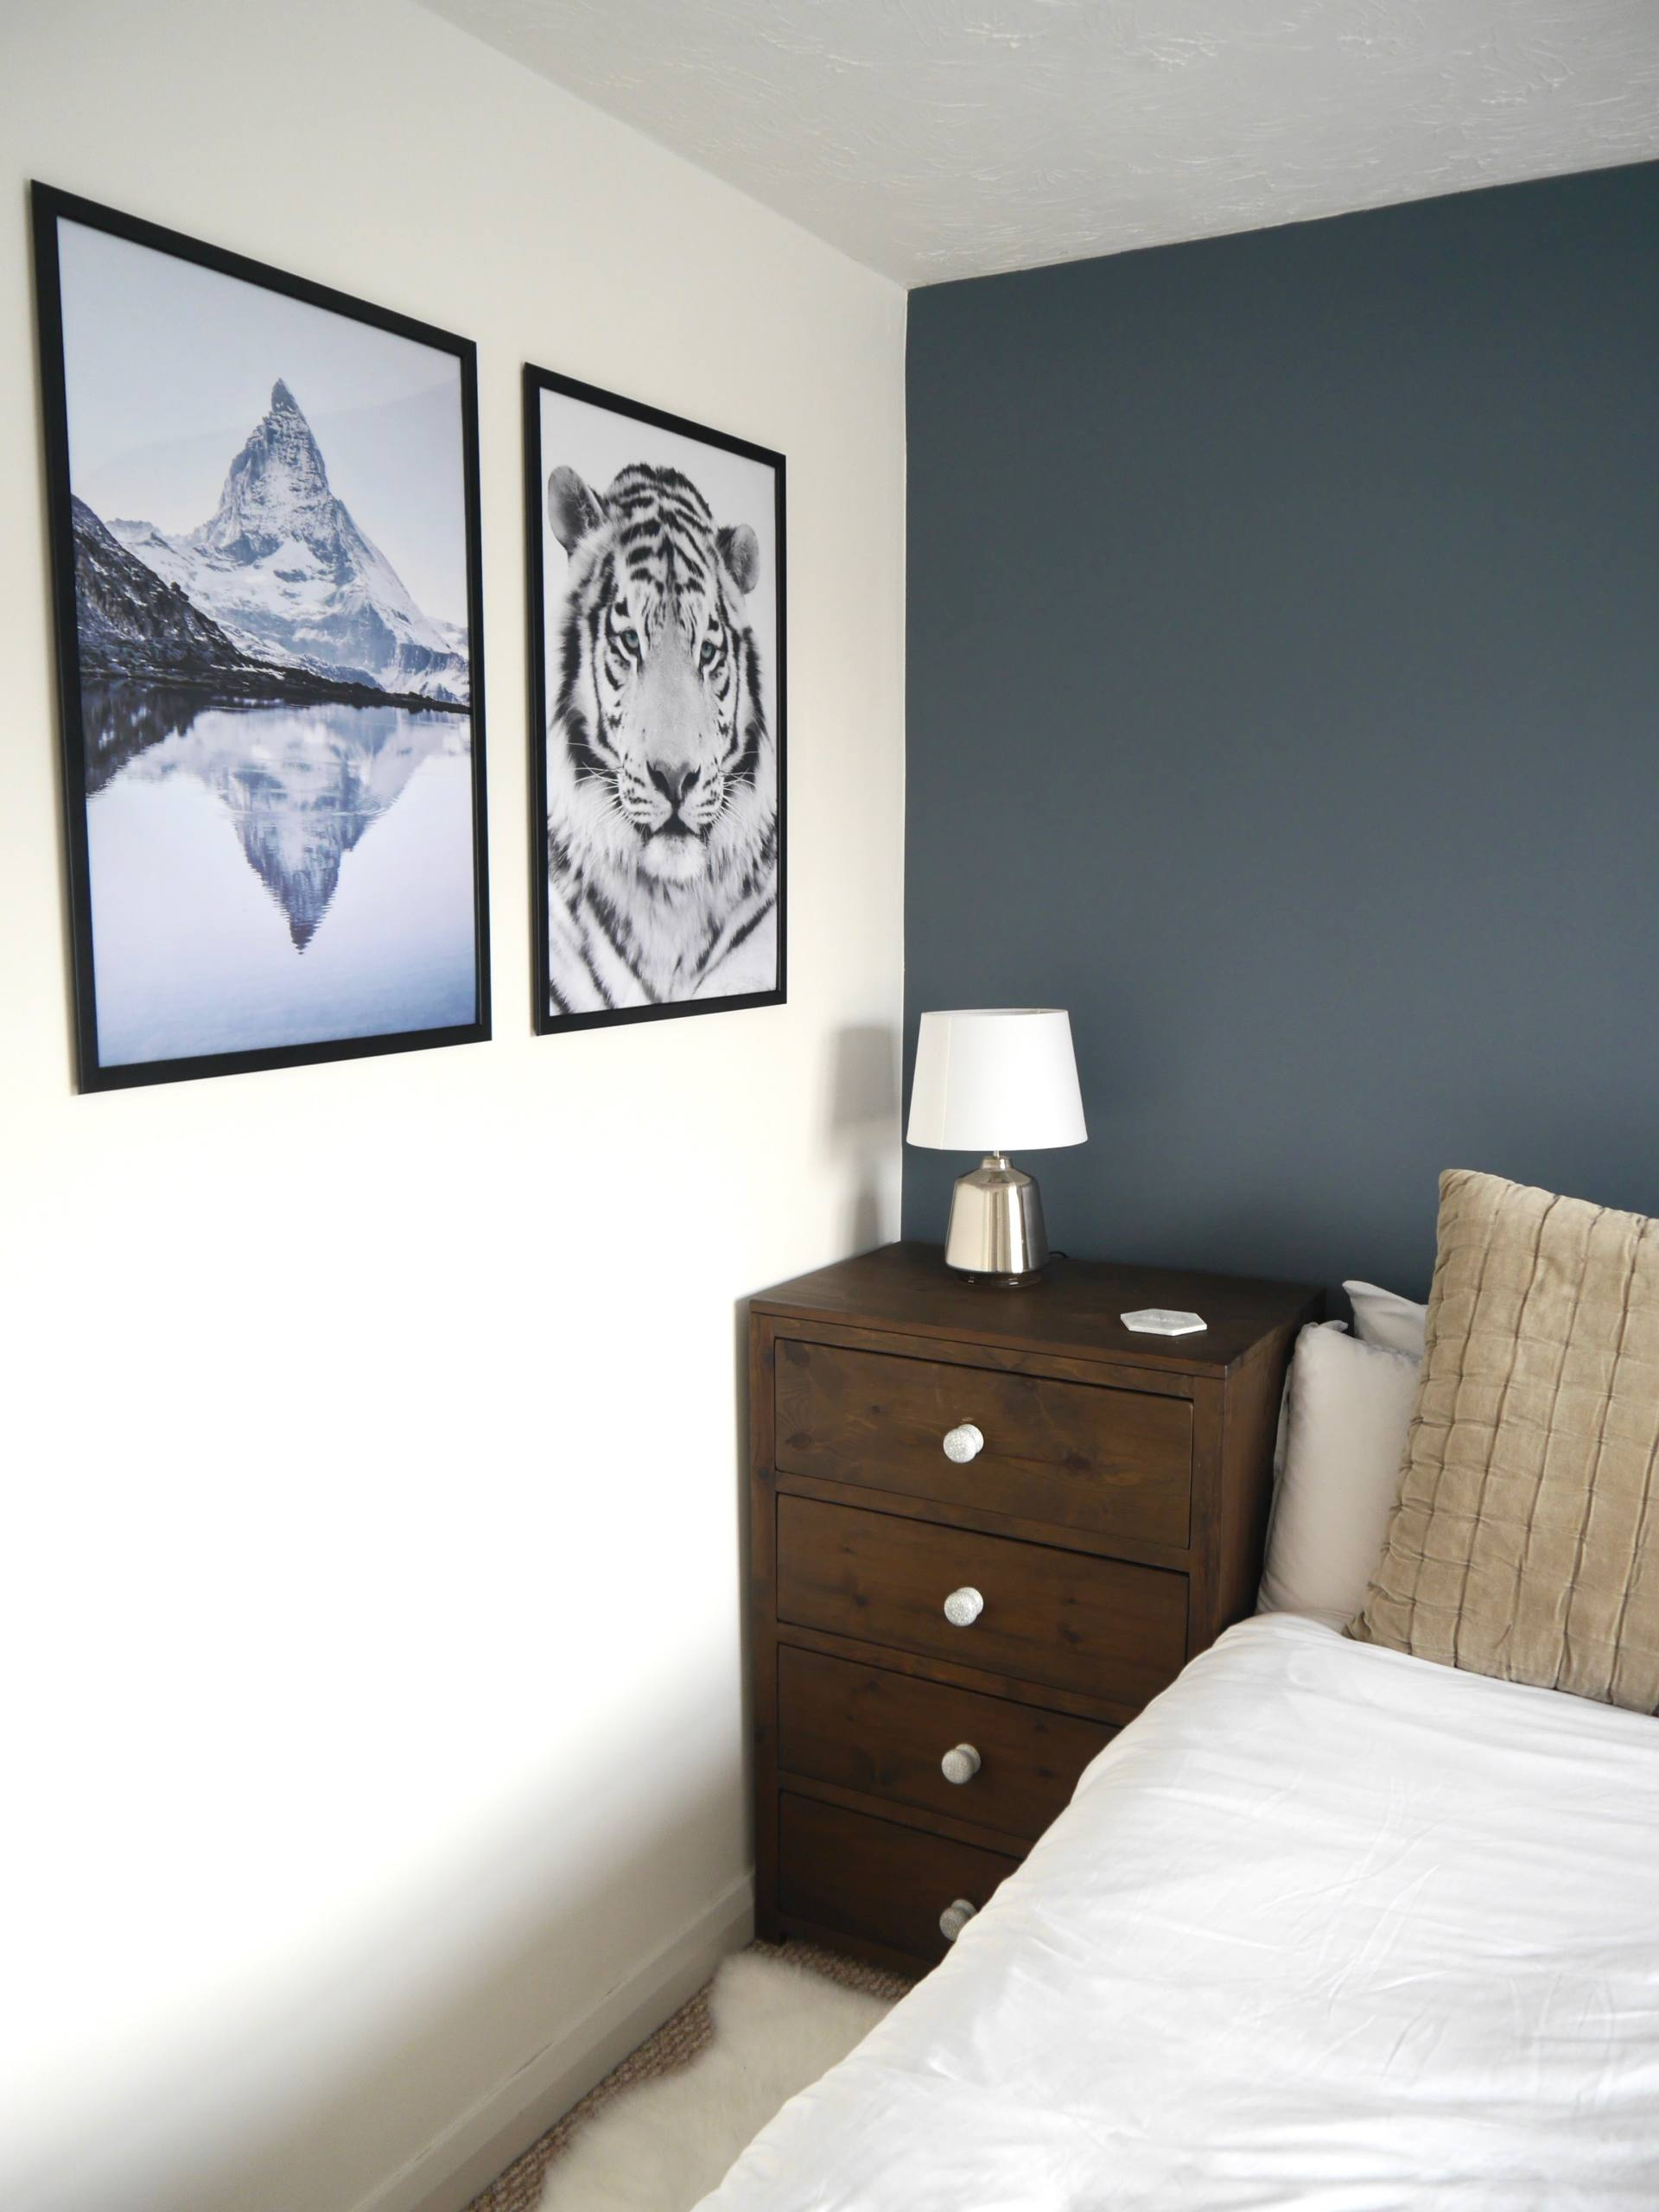 Desenio Framed Posters in Bedroom - Add Personality To Your New Home